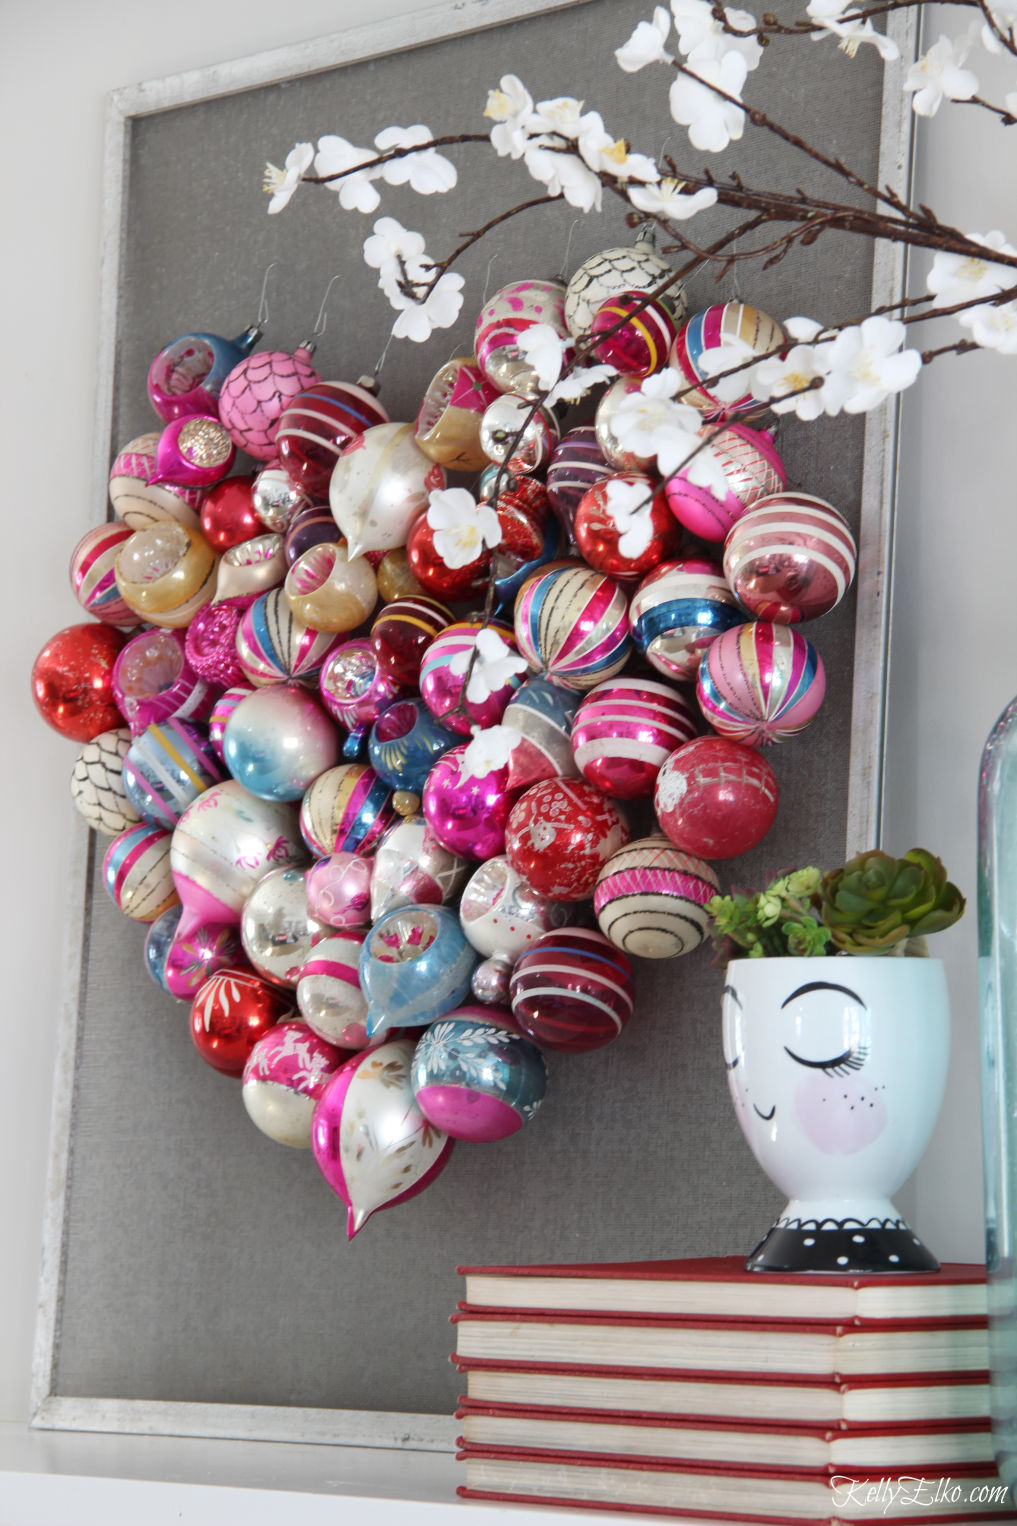 See how to make this DIY Christmas ornament Valentine heart screen kellyelko.com